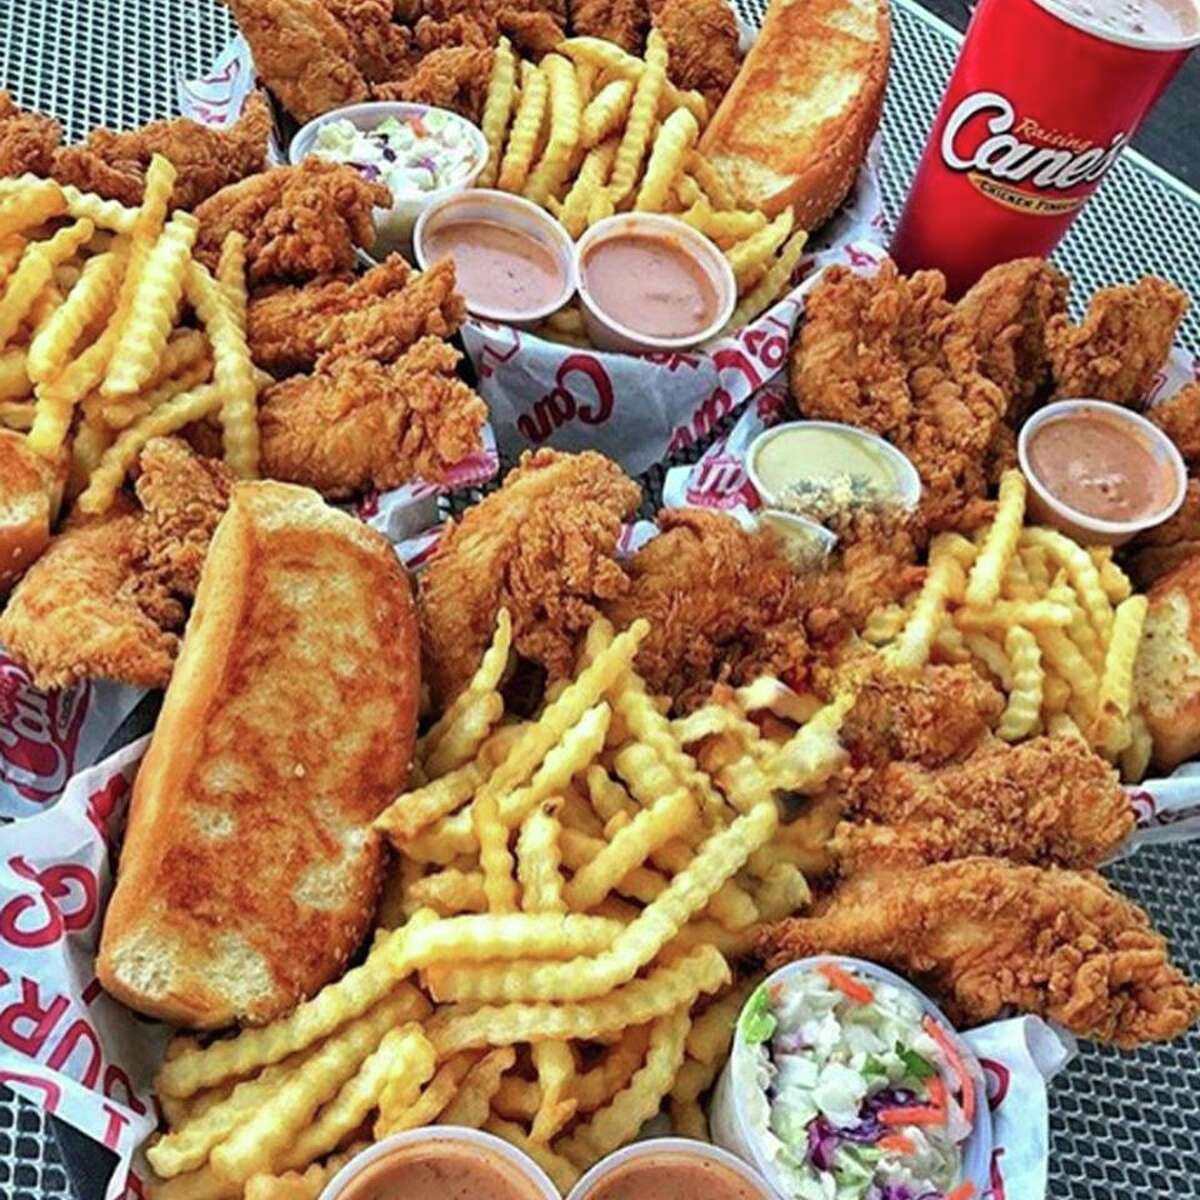 National Chicken Finger Day is July 27, and Raising Cane's is giving away one free chicken finger to customers.